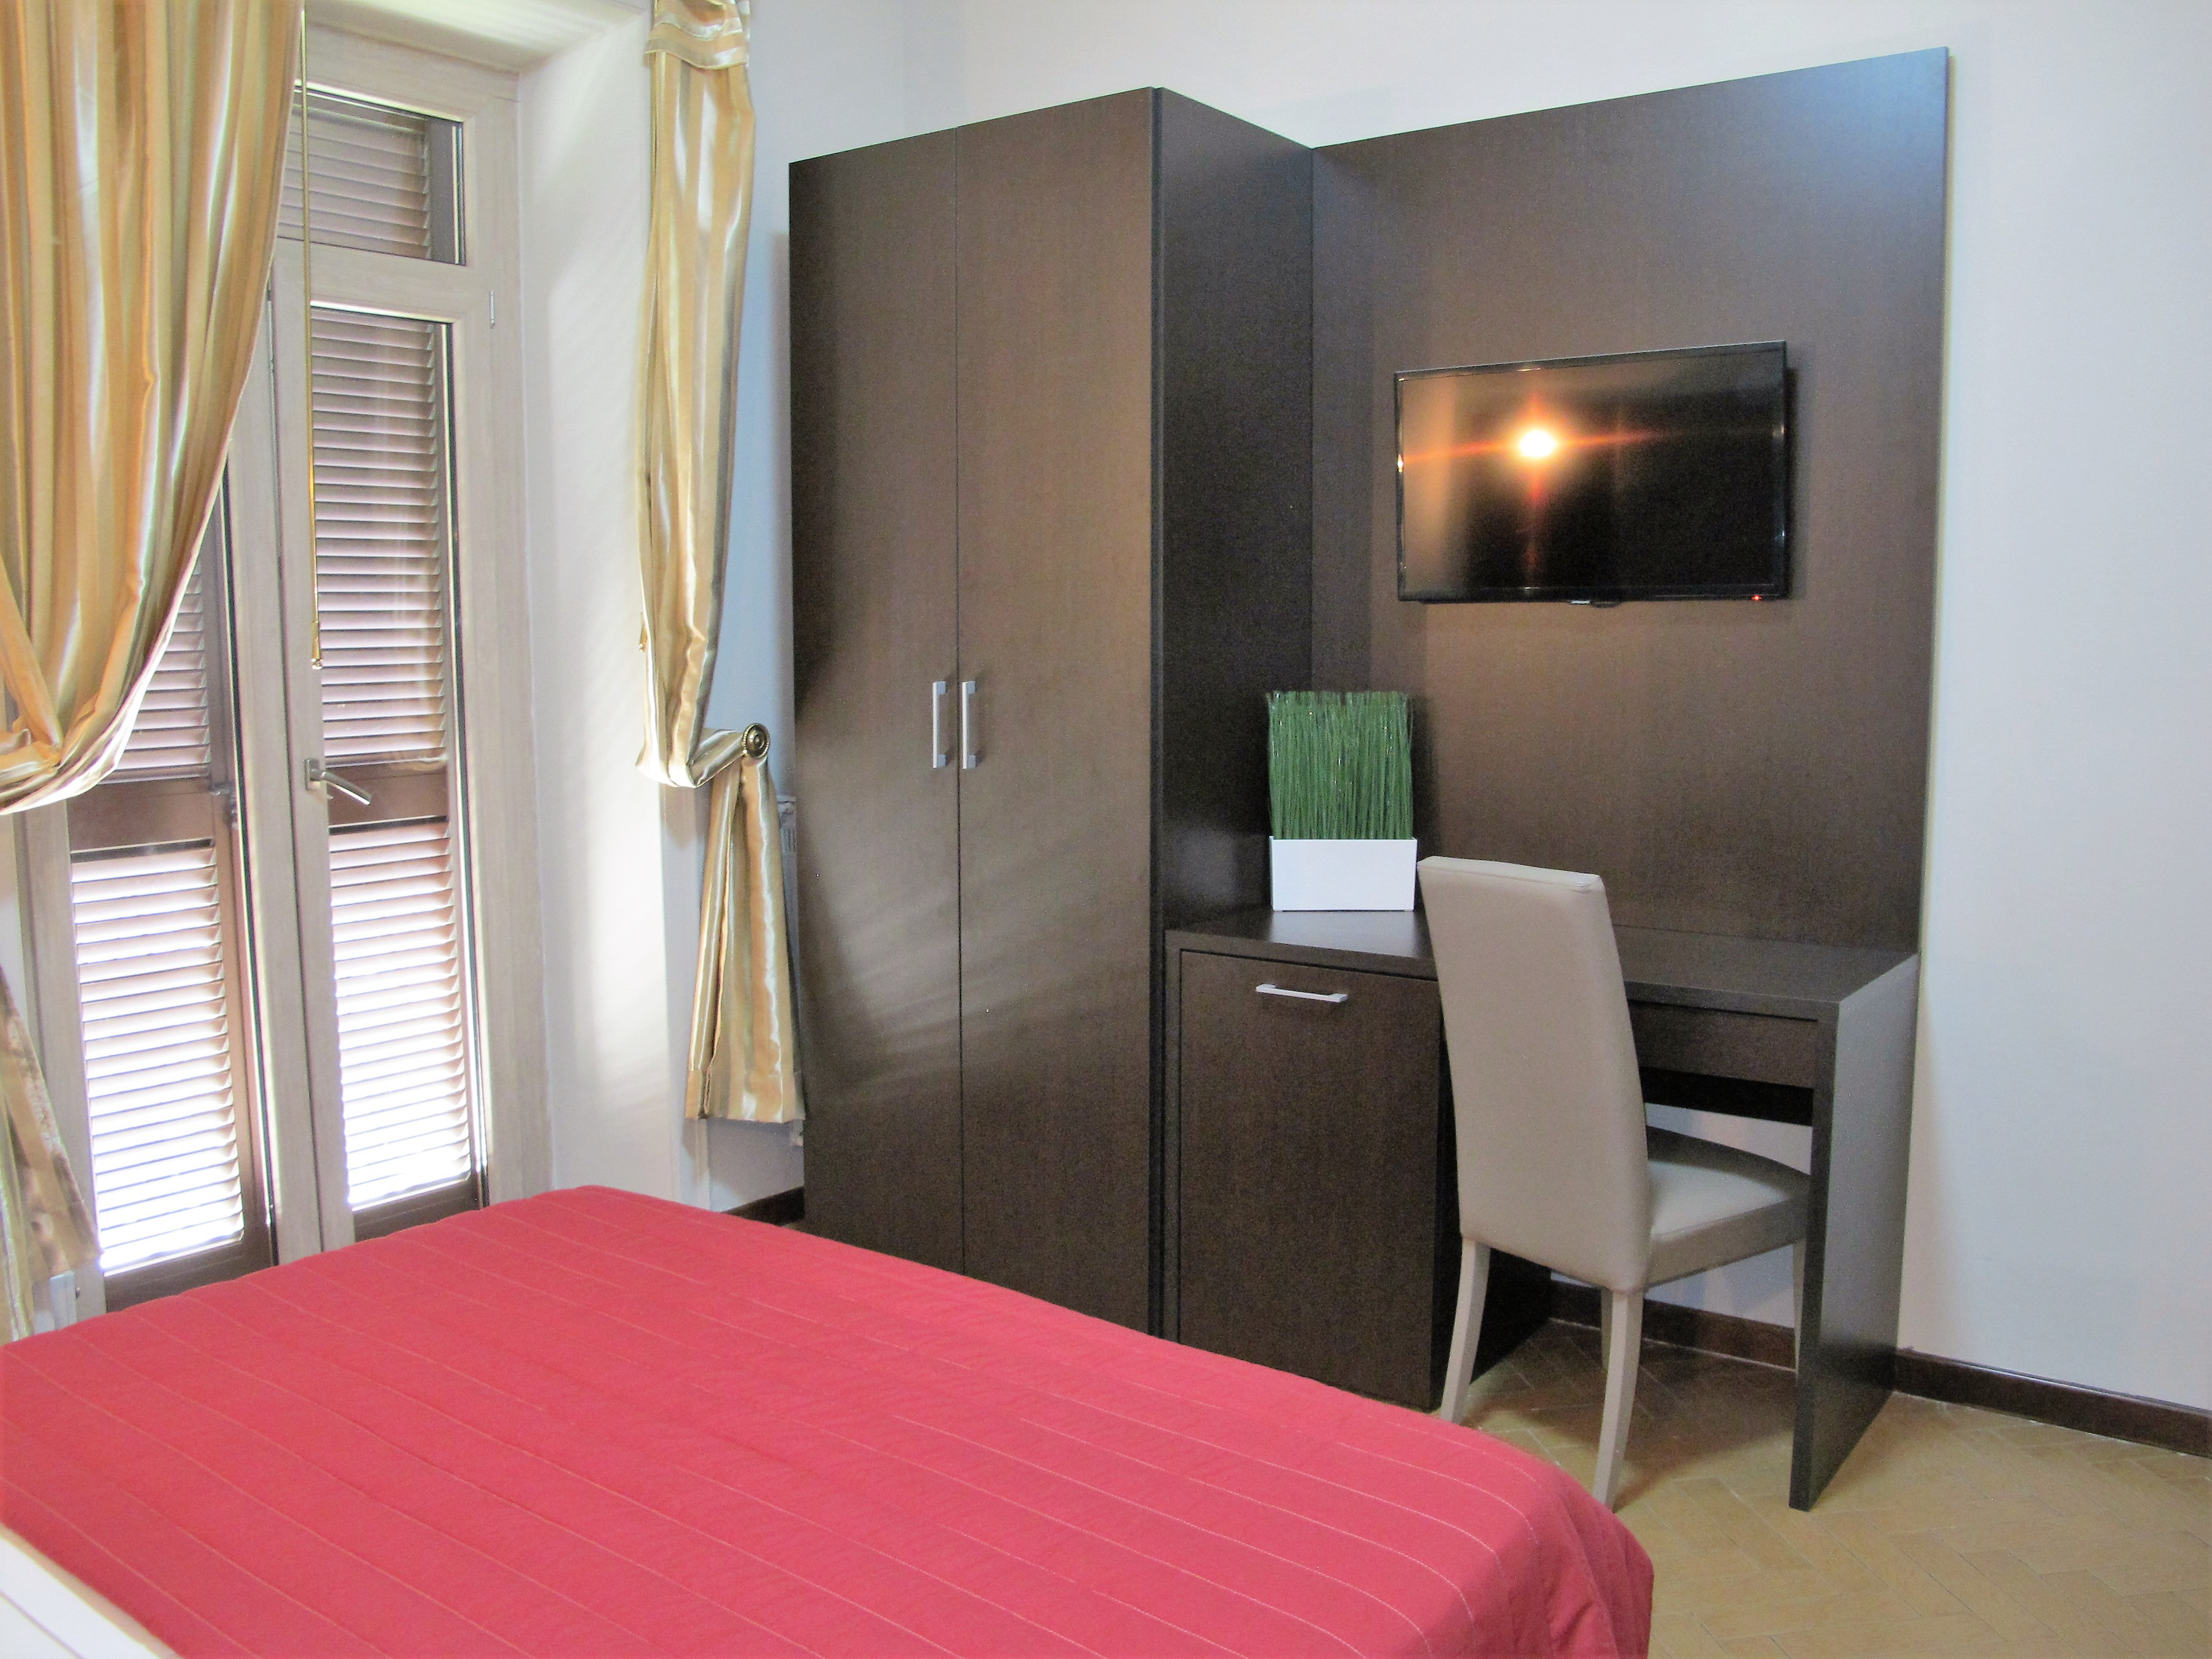 prenota camere hotel d 39 este roma. Black Bedroom Furniture Sets. Home Design Ideas